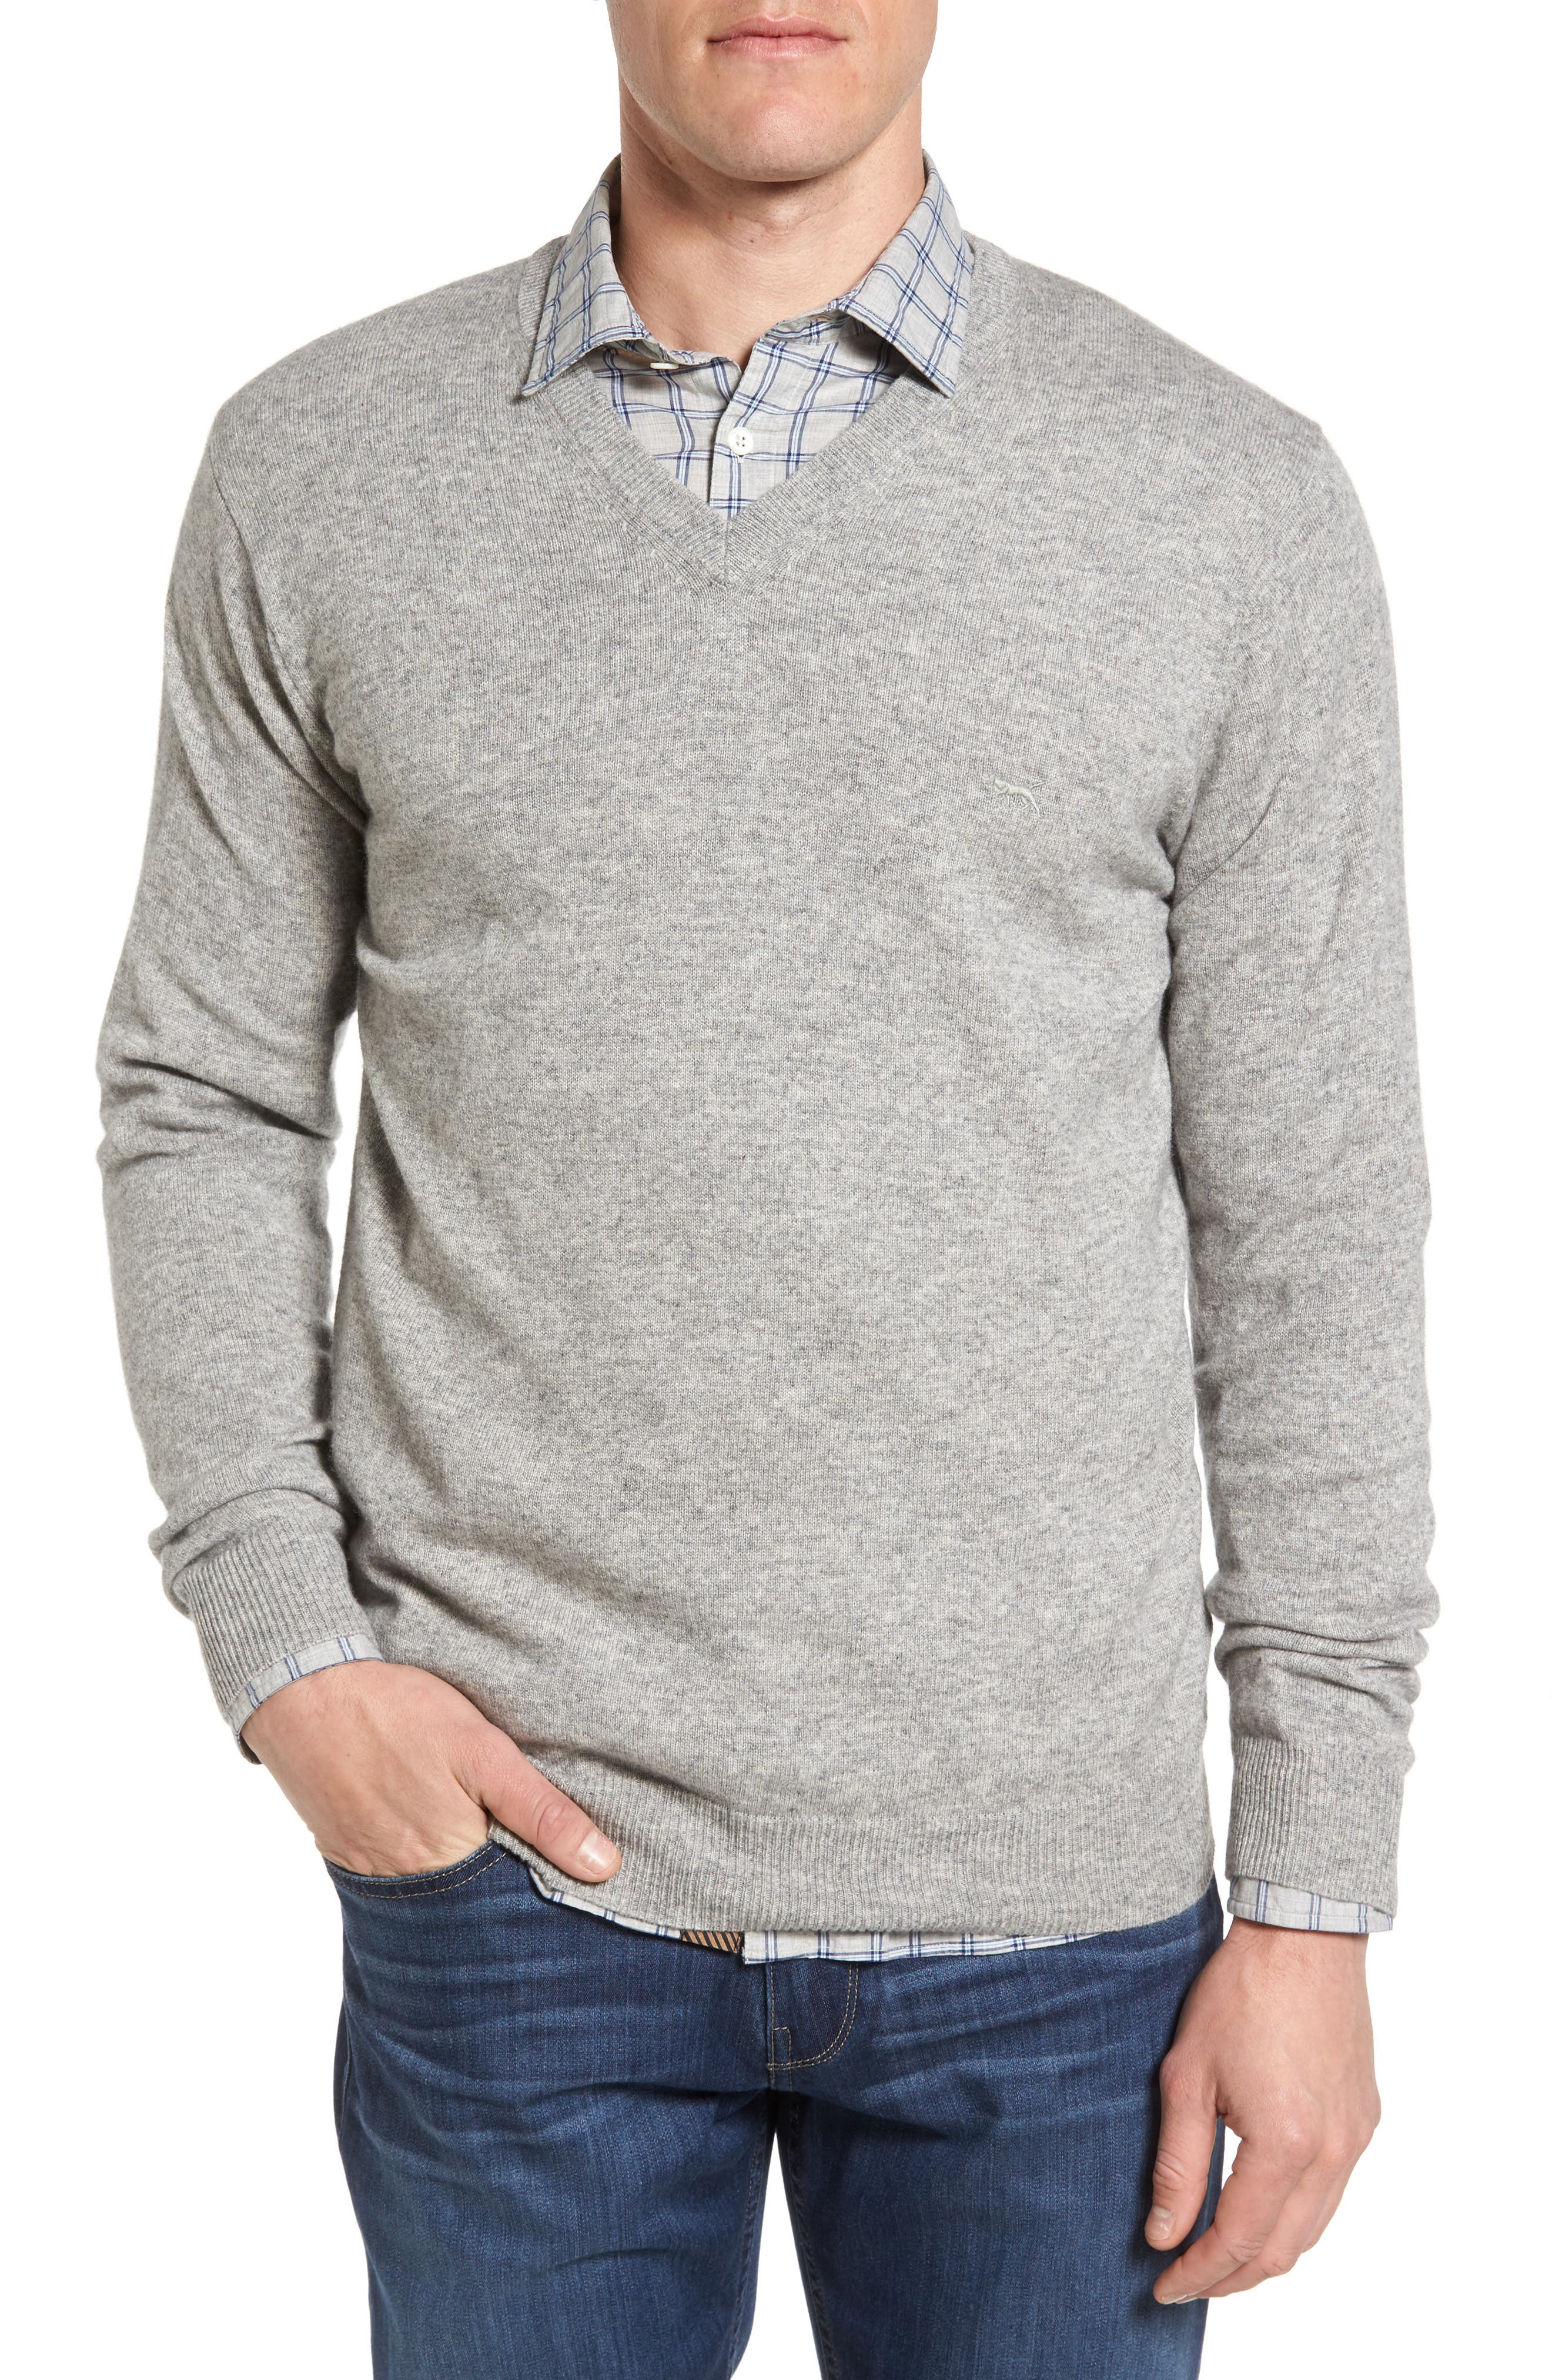 'Inchbonnie' Wool & Cashmere V-Neck Sweater,                         Main,                         color, 020